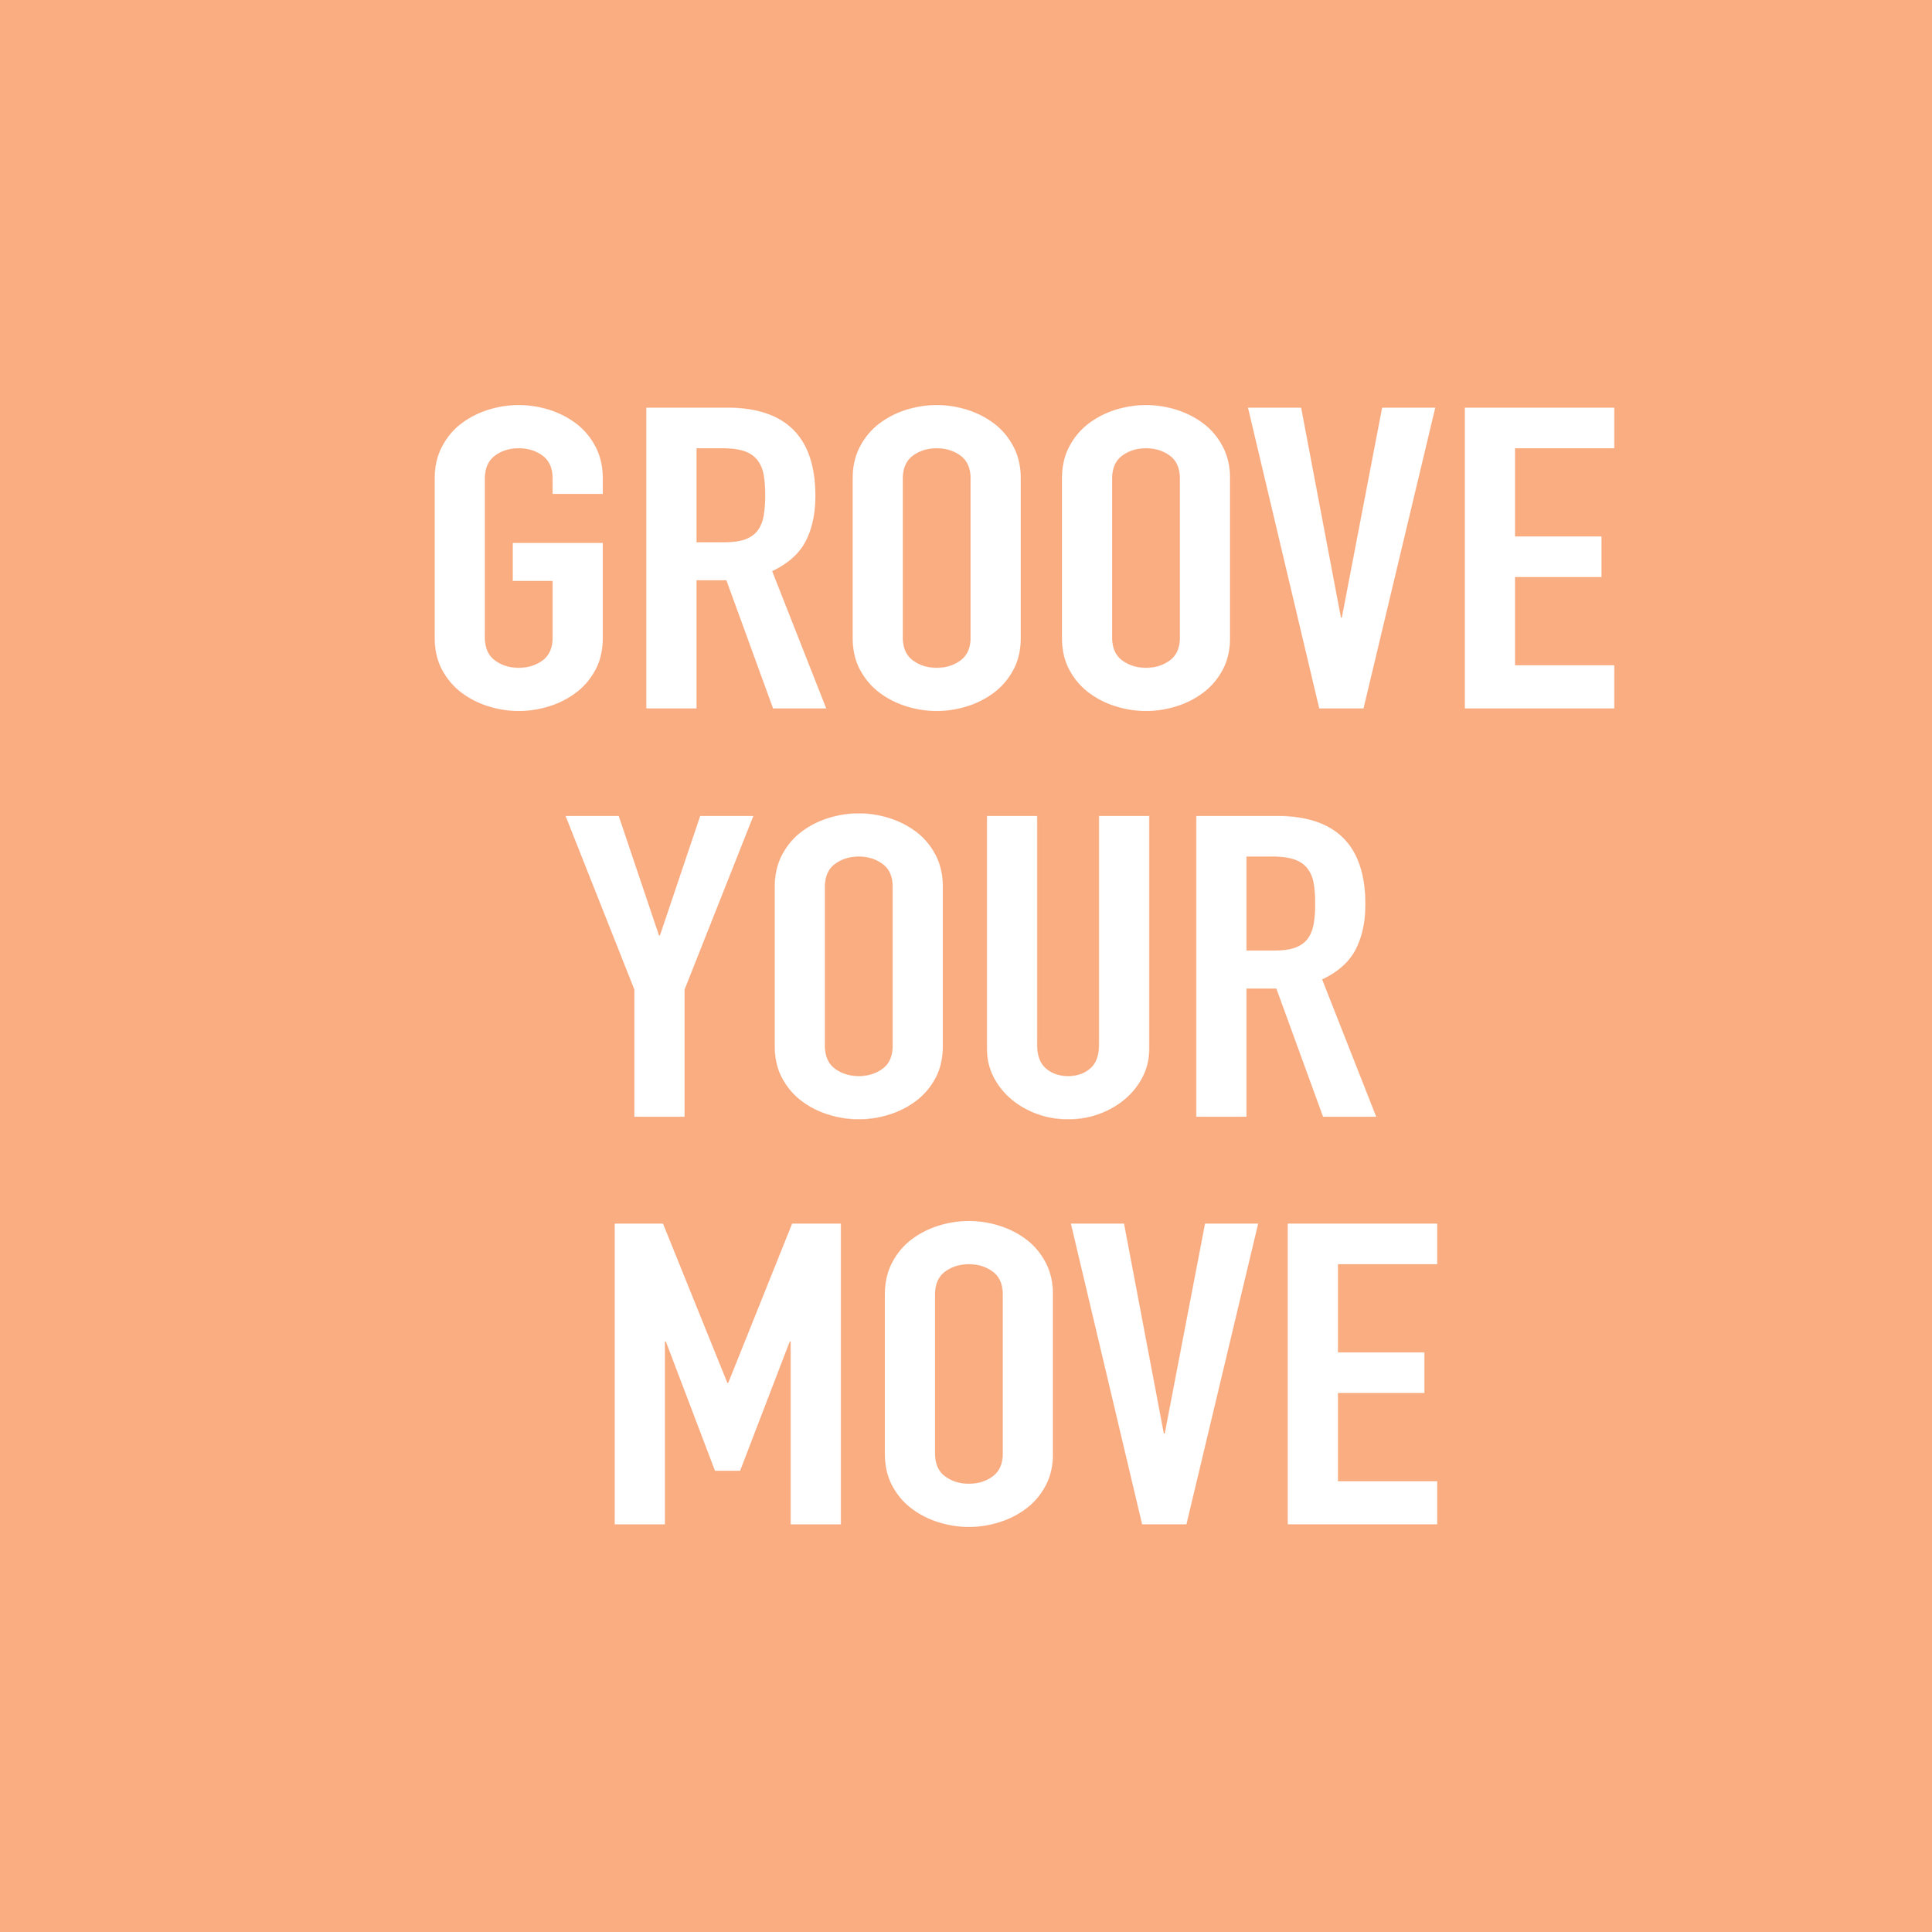 Moving to a new place and want to start off on the right foot? We can help you get an extra fresh start by helping you set up each room from scratch. Moving can be stressful, but we can help you create a solid foundation to start off your new home accepting good vibes only. We can even smudge out any residual negative energy from the people before you... ain't nobody got time for that.